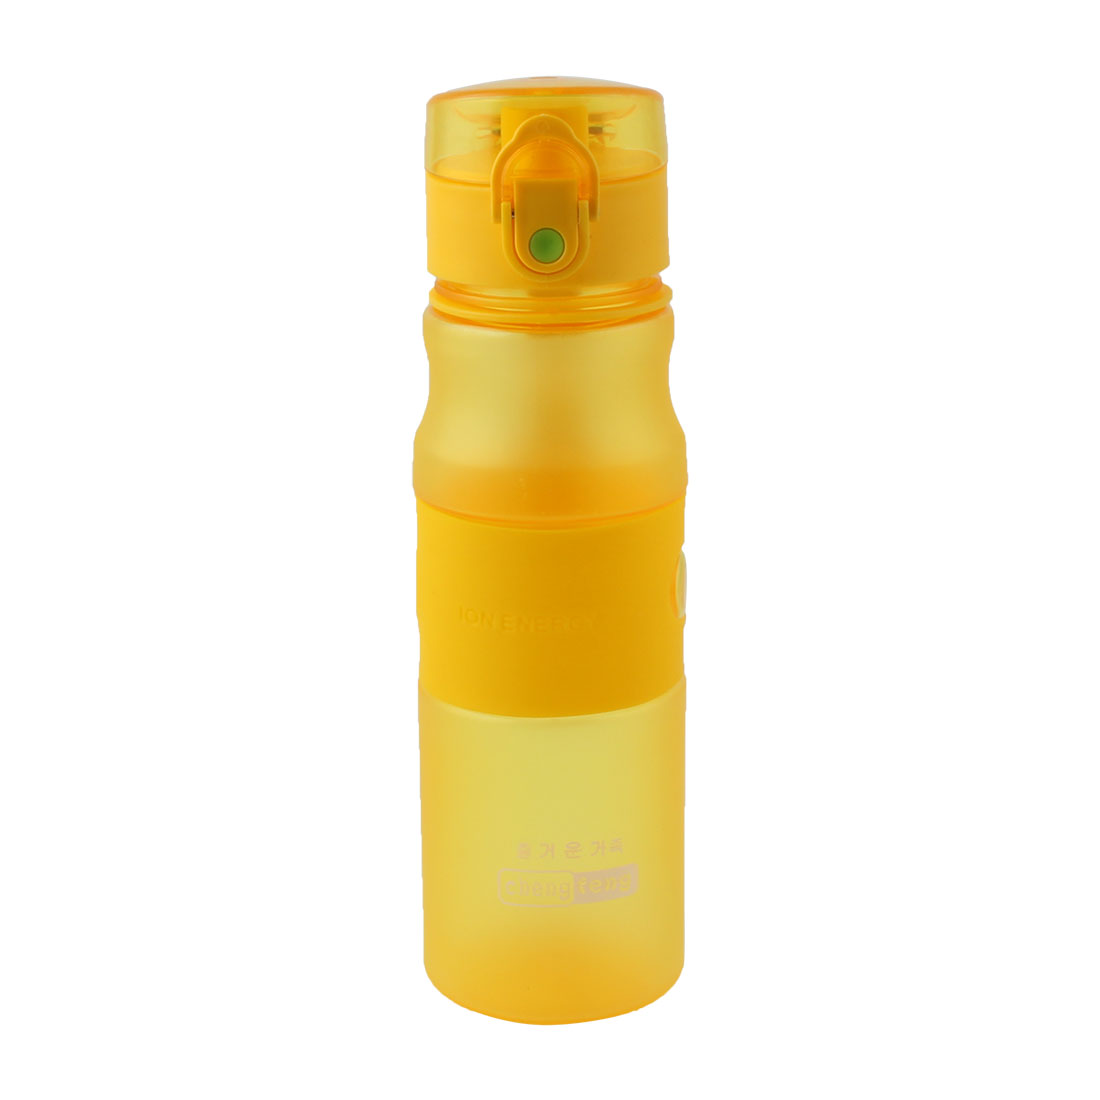 Travel Plastic Frosted Tea Juice Cup Handy Sports Drinking Straw Water Bottle Yellow 550ml